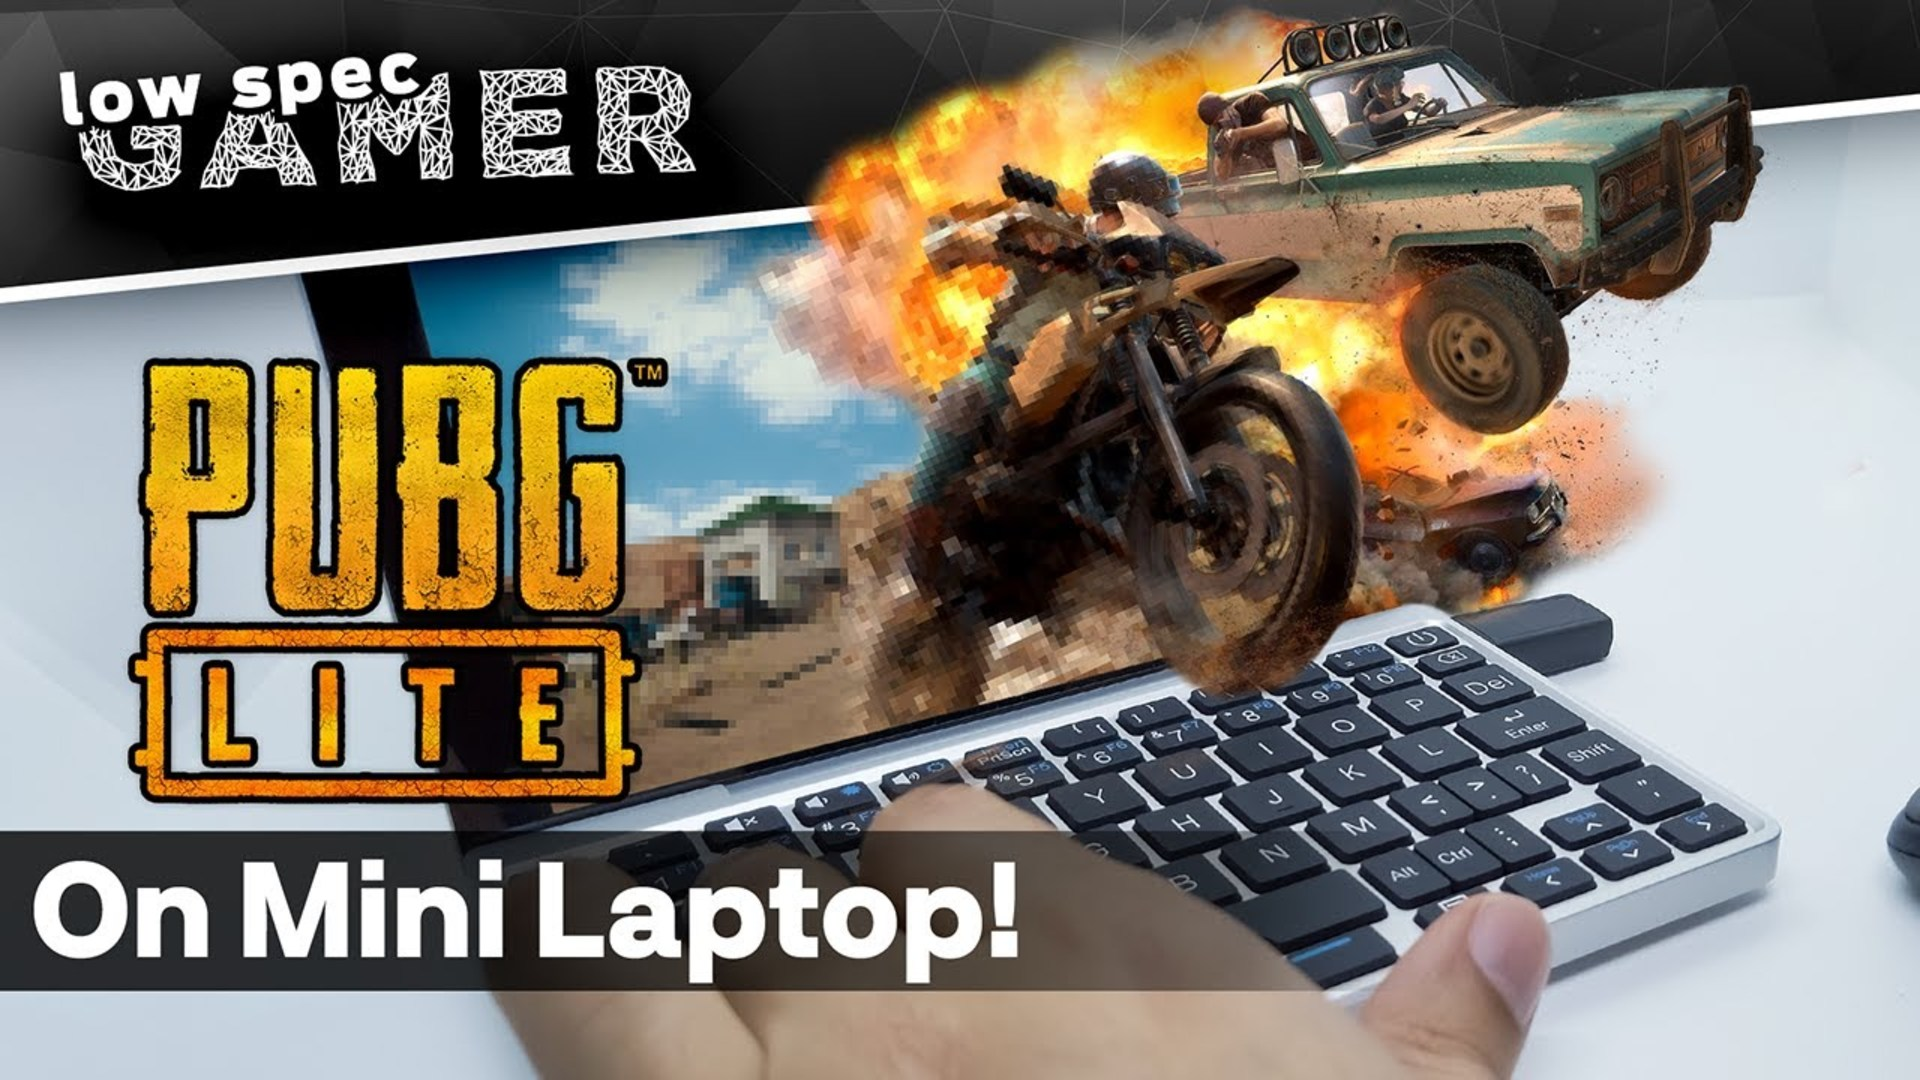 PUBG on an Intel ATOM Laptop? The magic of PUBG Lite PC